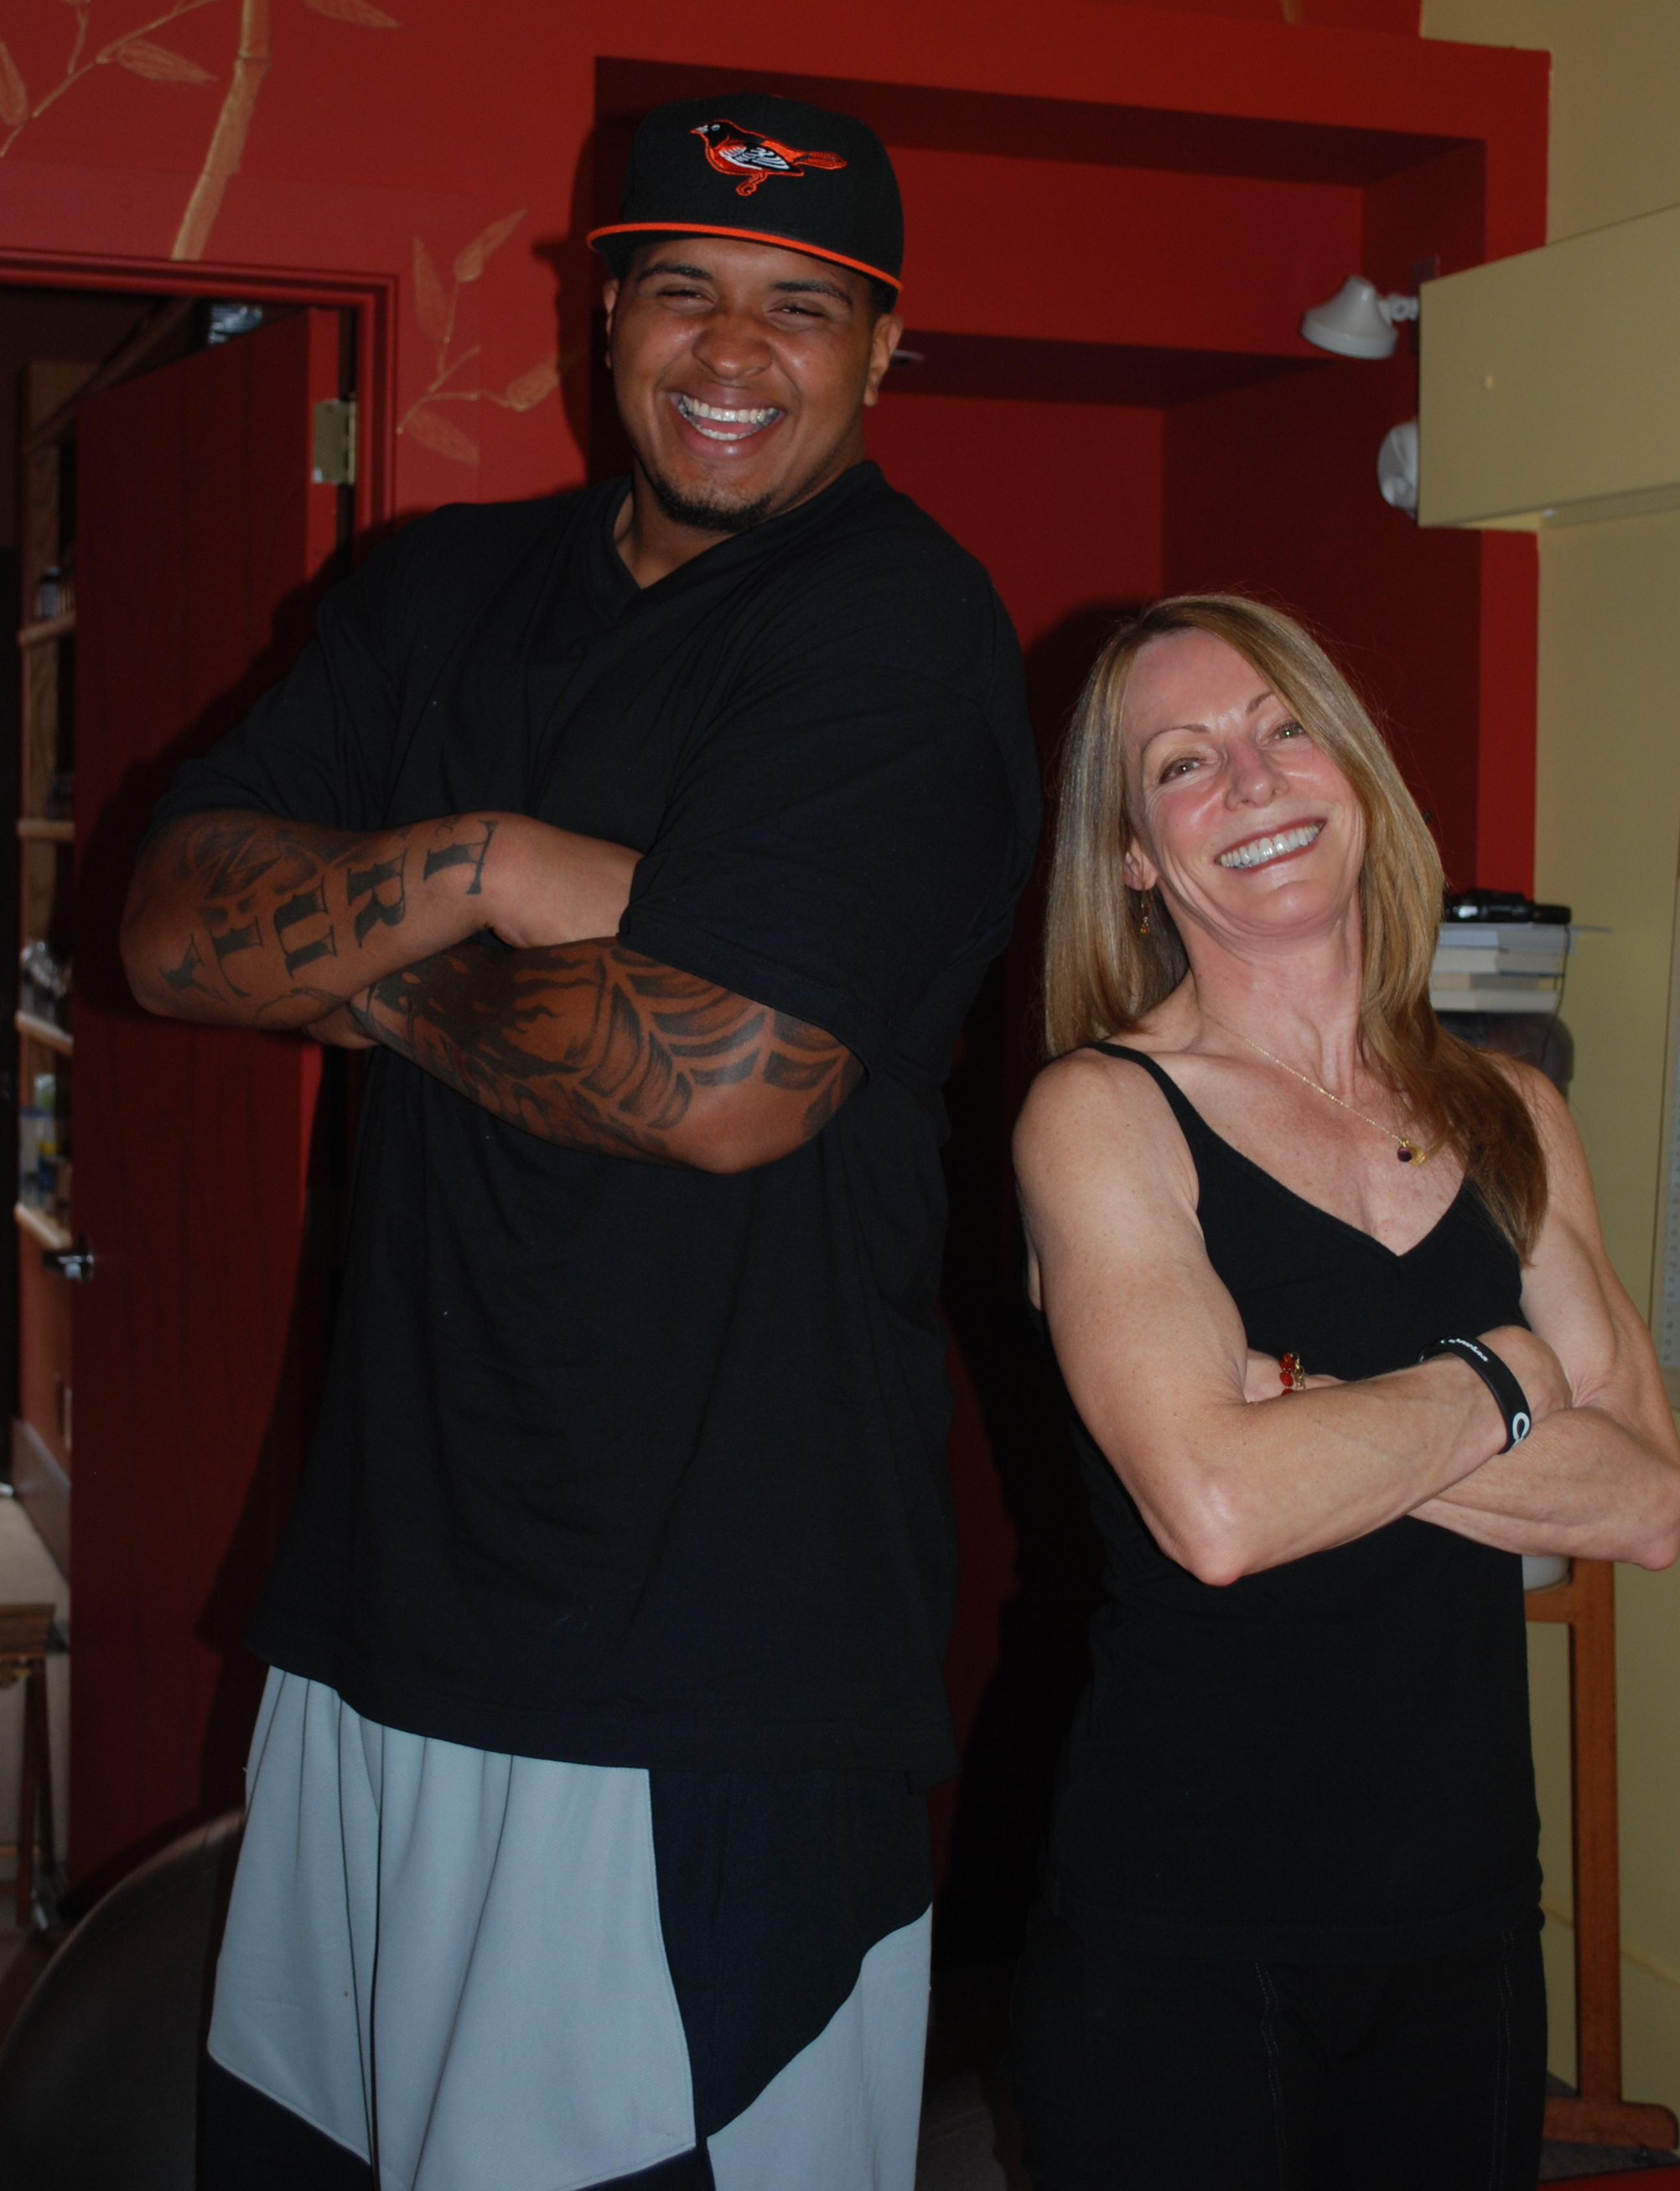 Maurkice Pouncey at Pittsburgh Personal Training Studio